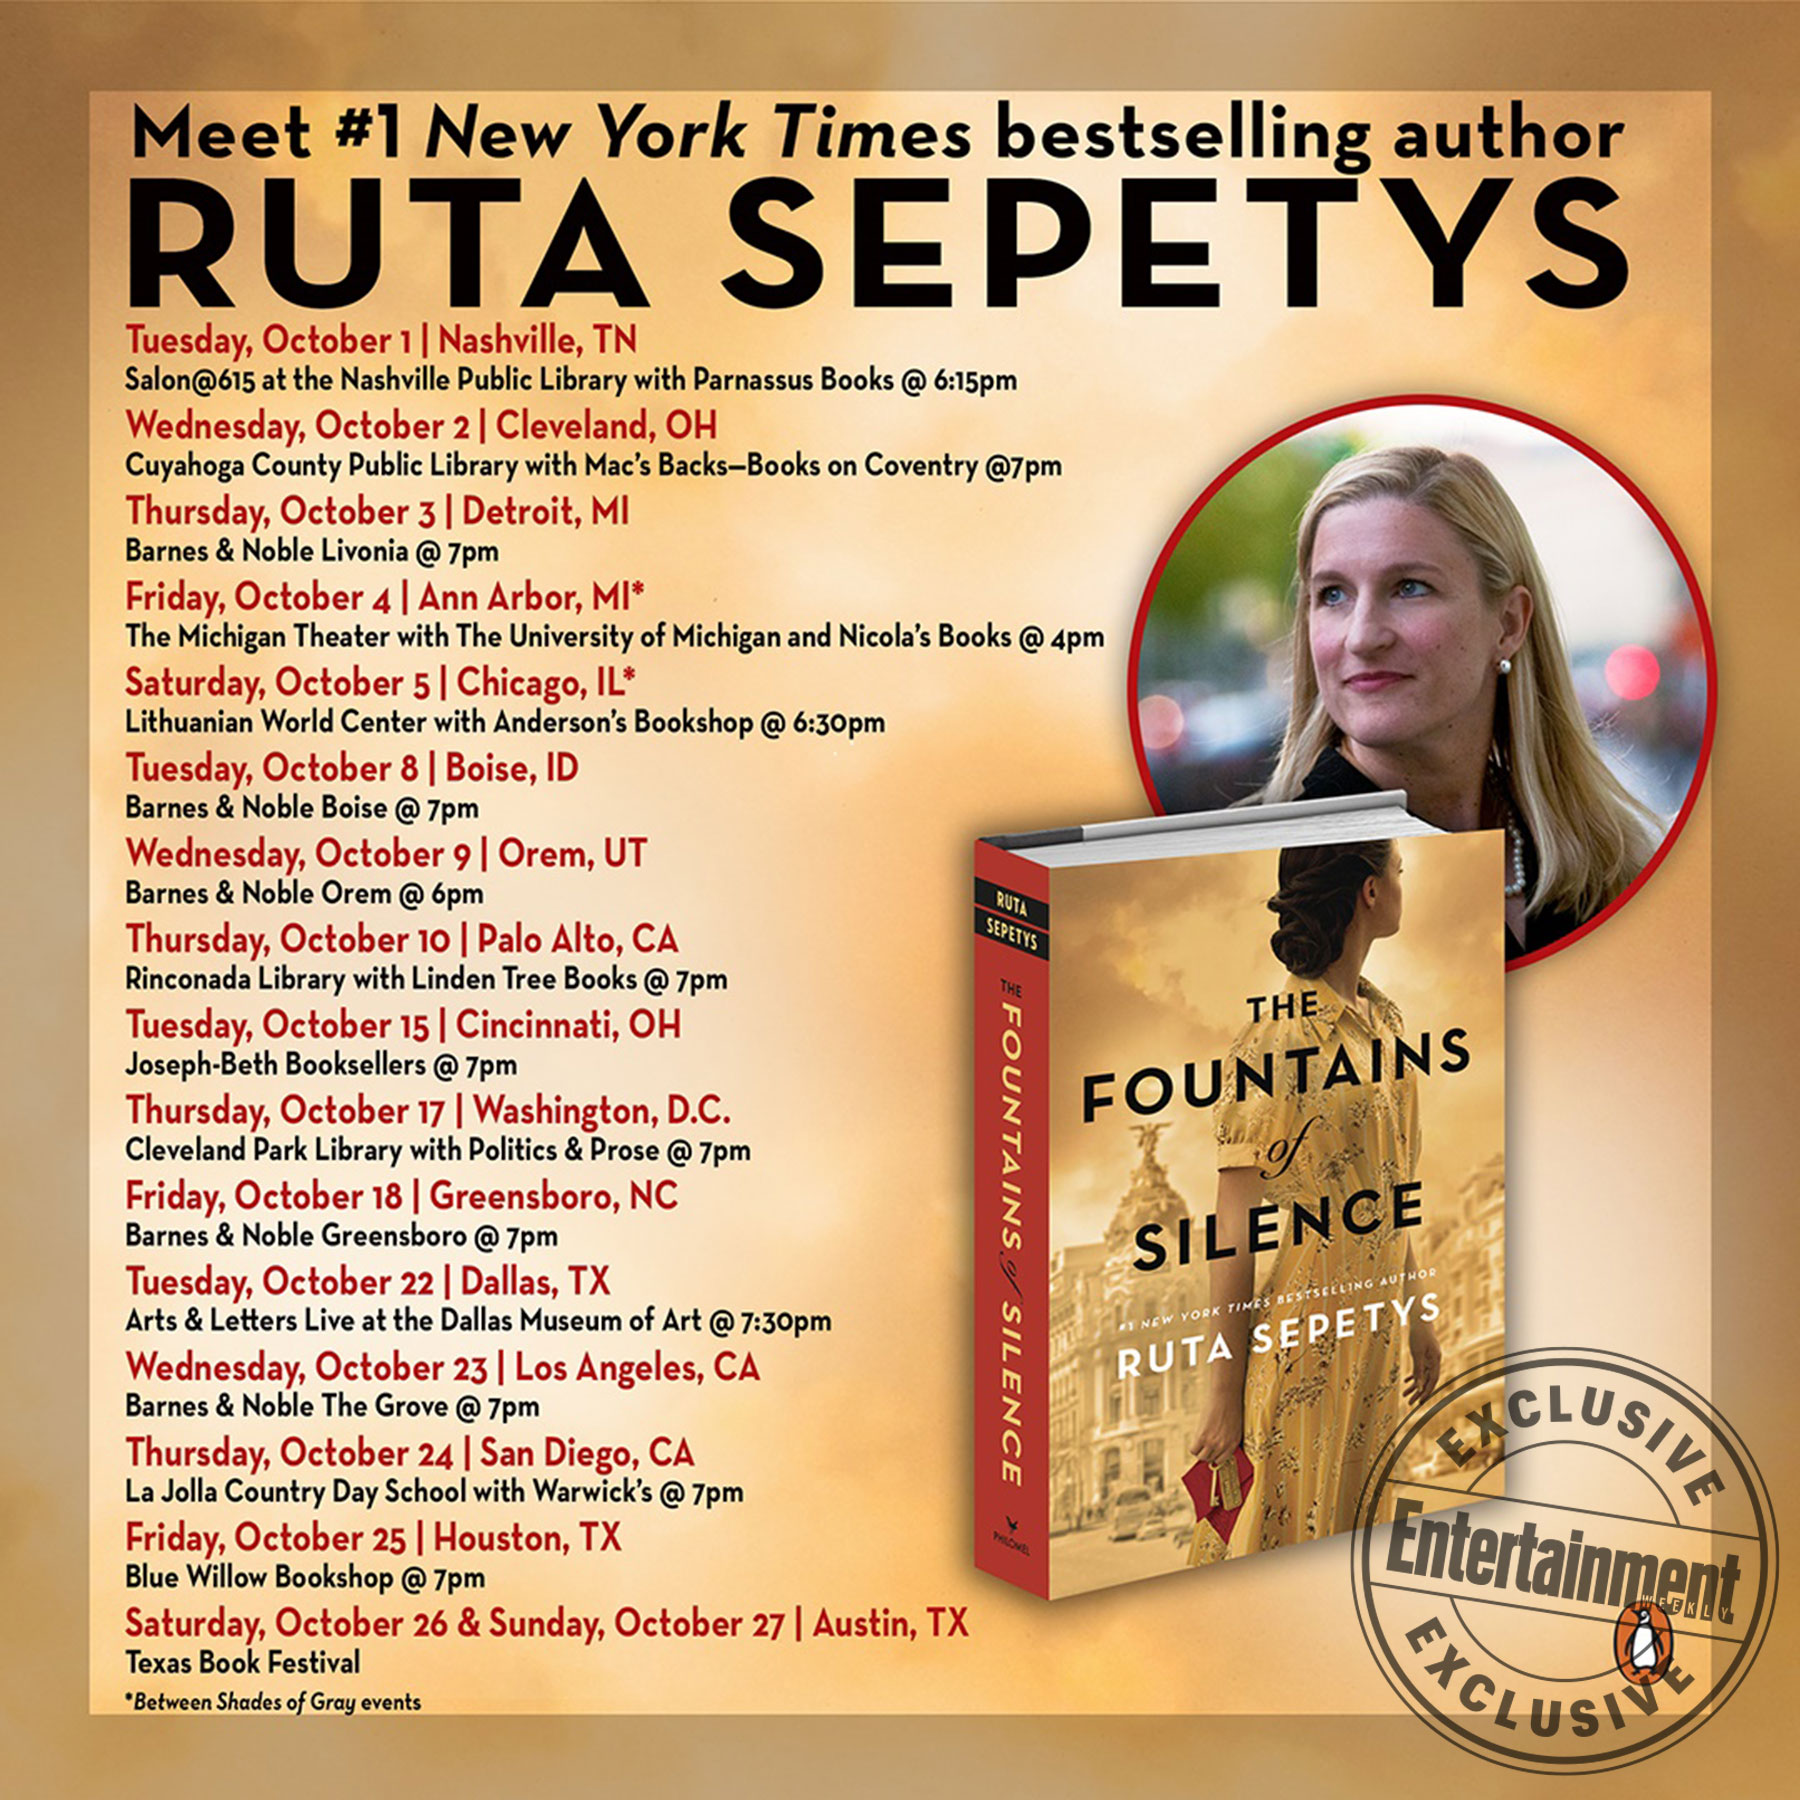 The Fountains of Silence book tour